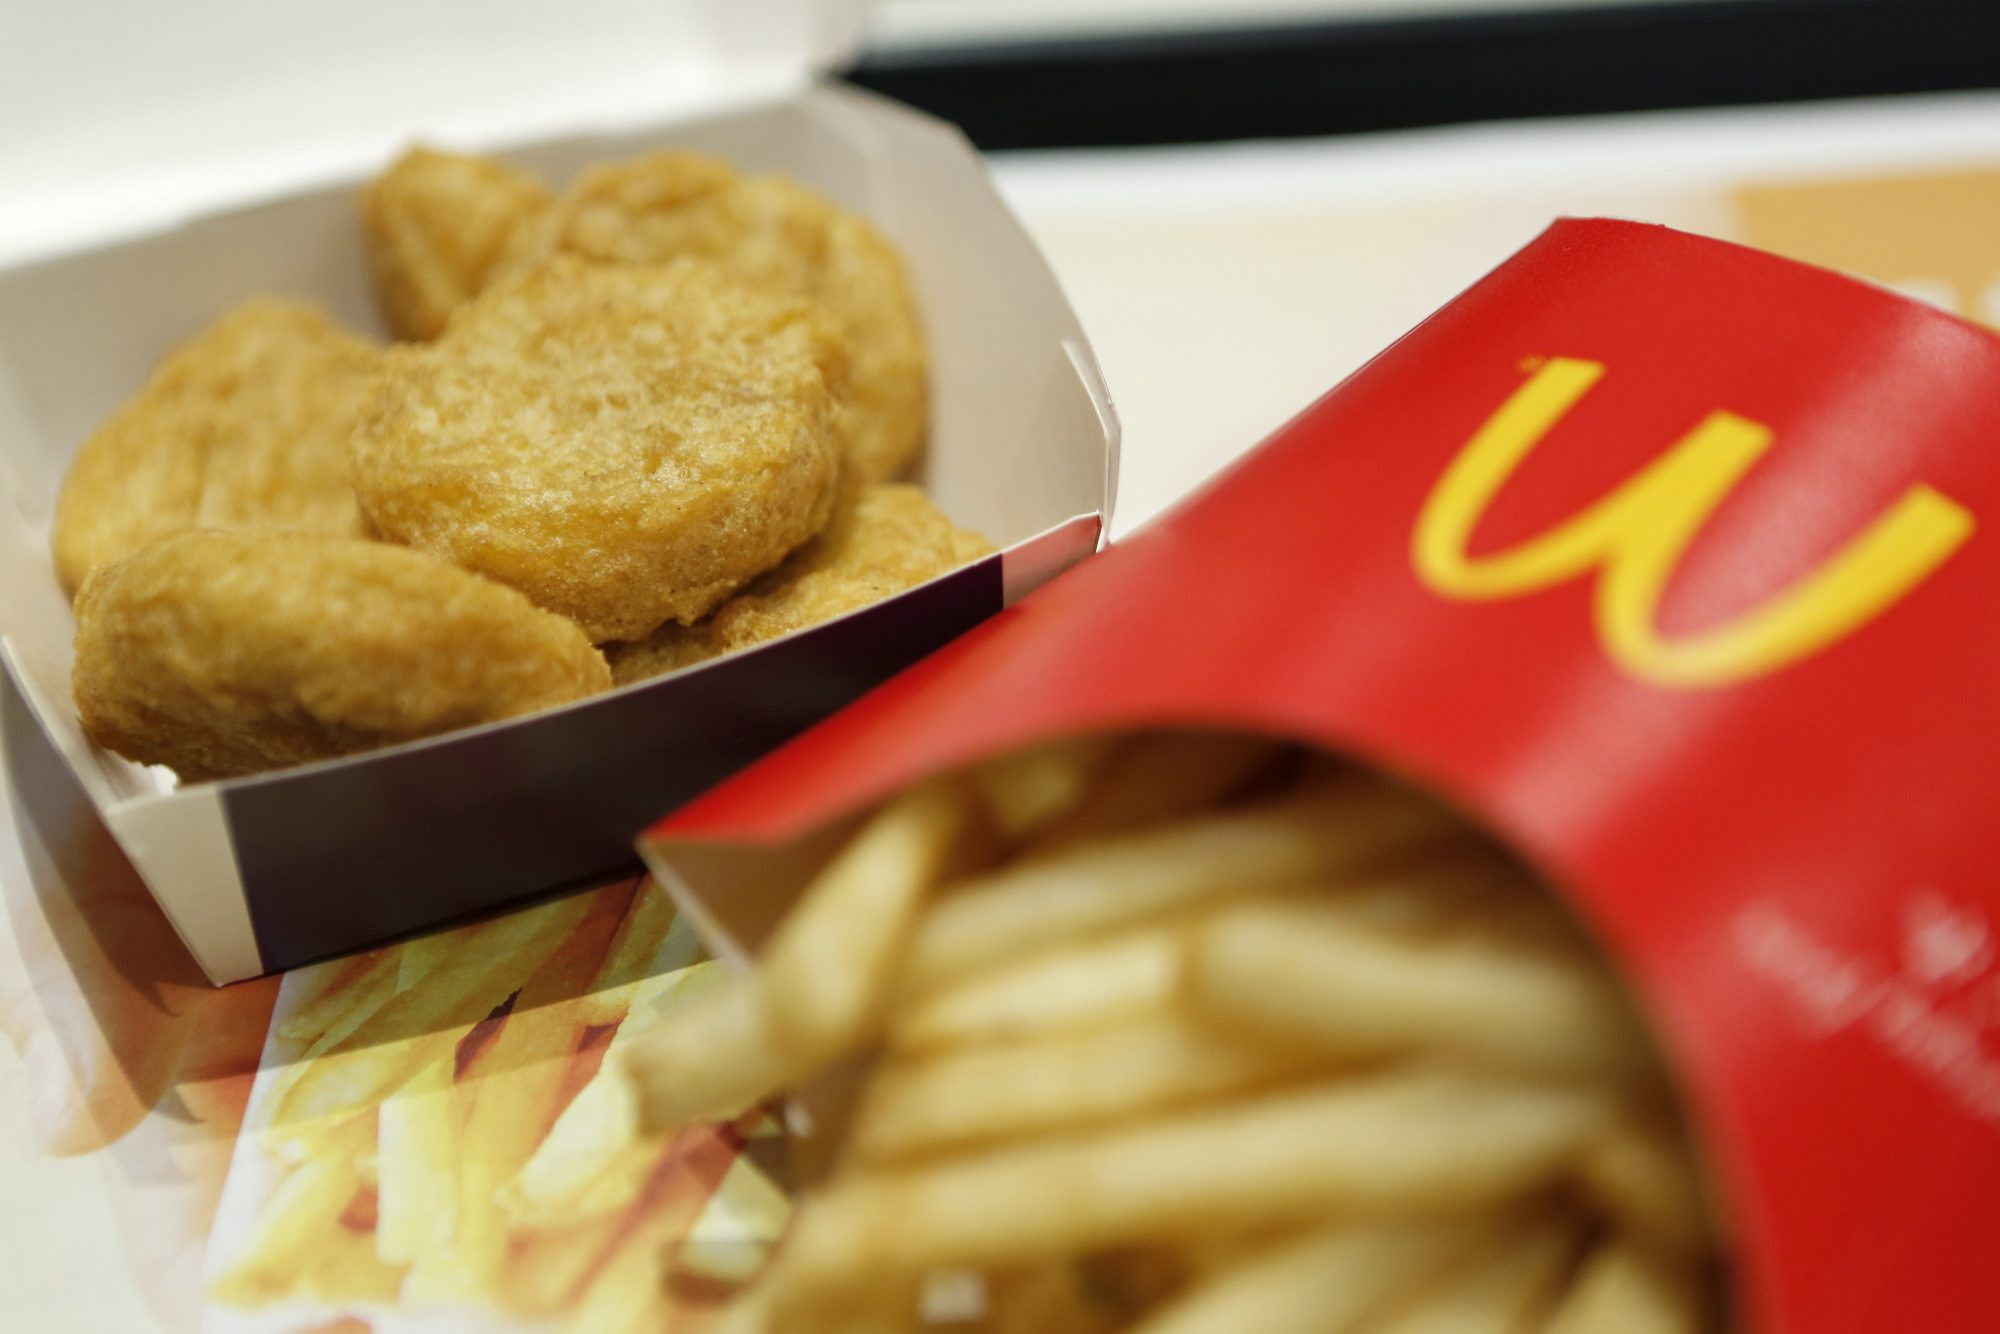 Views Of McDonald's Restaurants As McDonald's Japan Investigates Nuggets From Cargill's Thai Unit